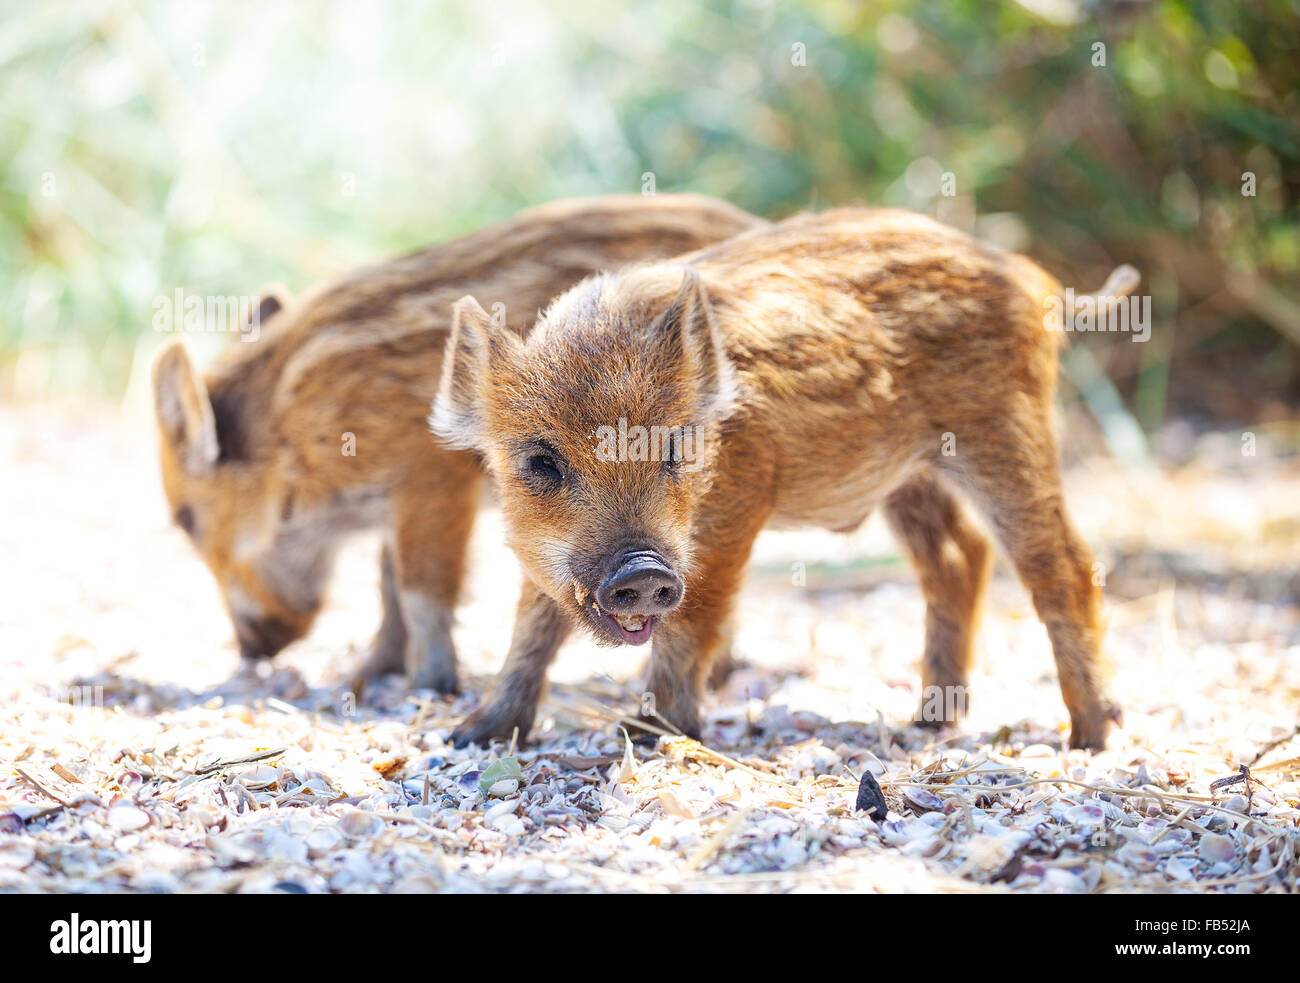 Two wild piglets eating food remains from the ground - Stock Image